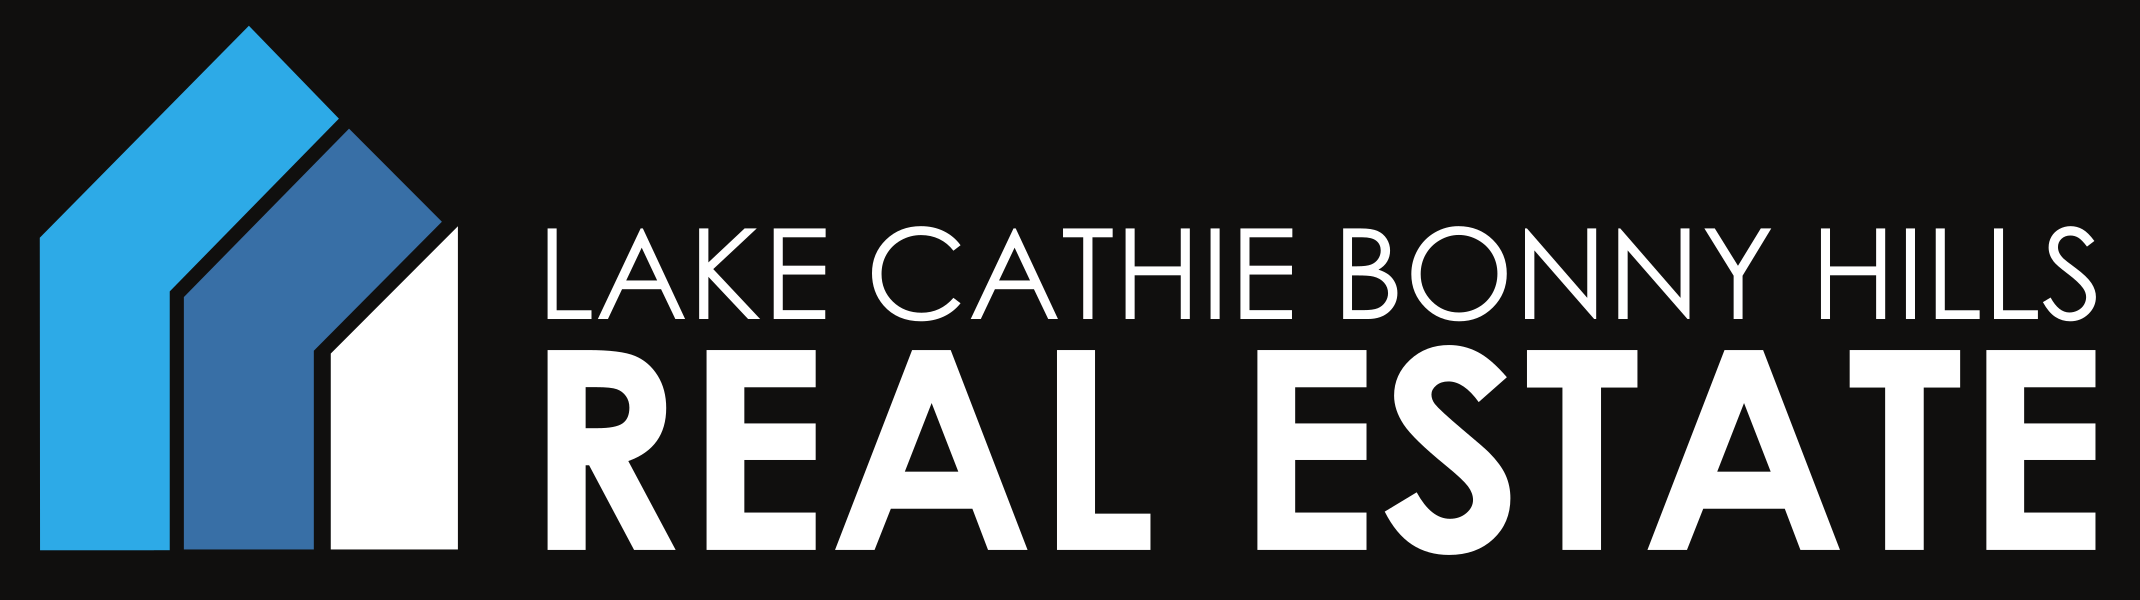 Lake Cathie Bonny Hills Real Estate - logo